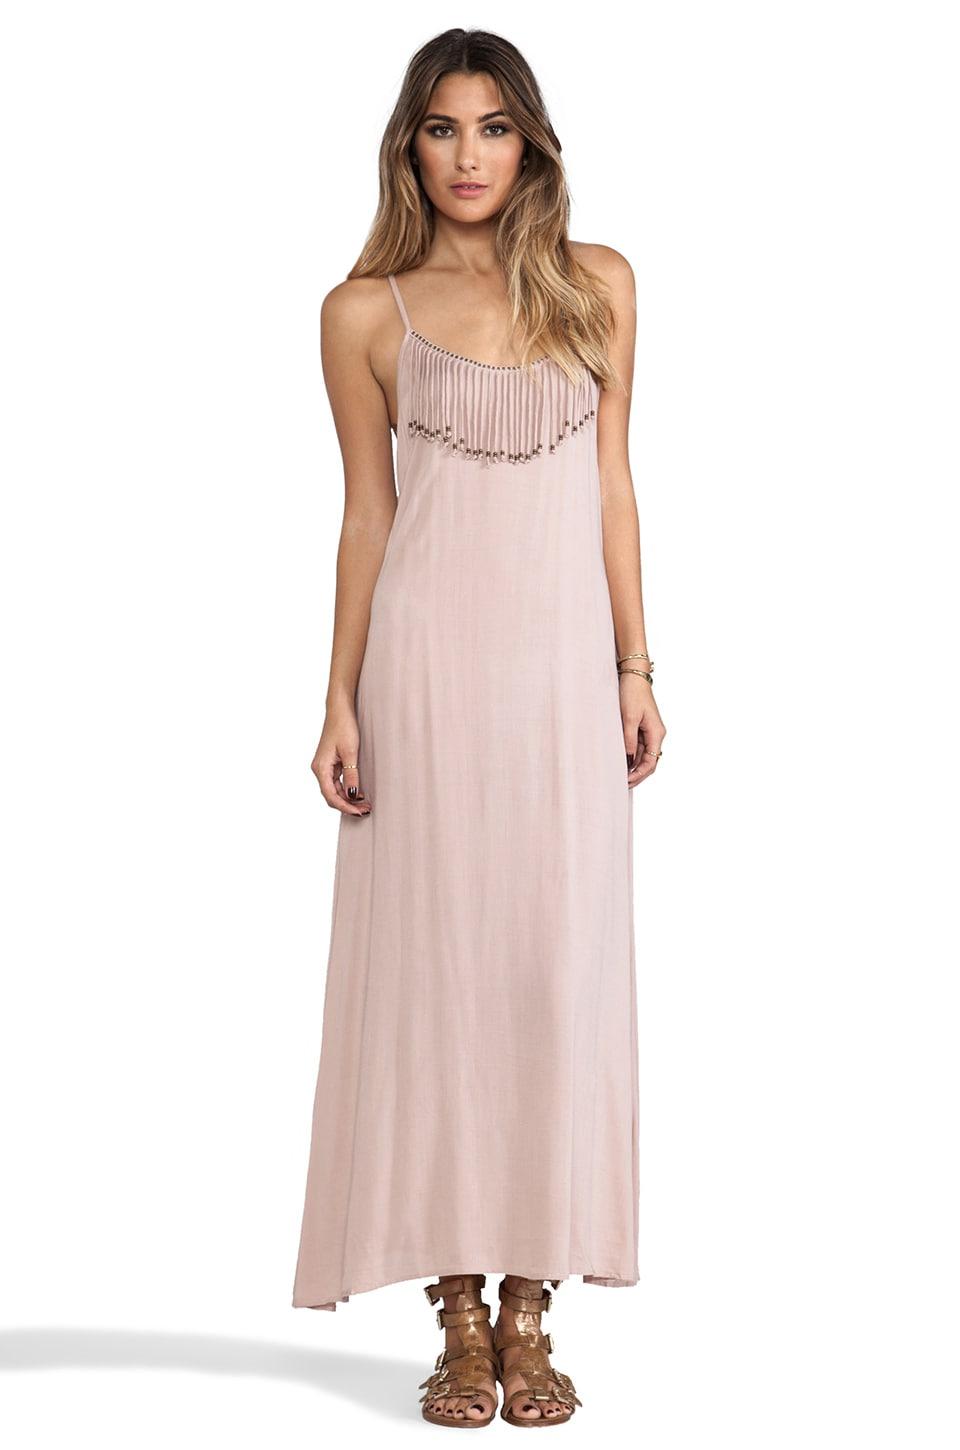 Tiare Hawaii Las Cruces Fringed Neckline Maxi Dress in Fawn